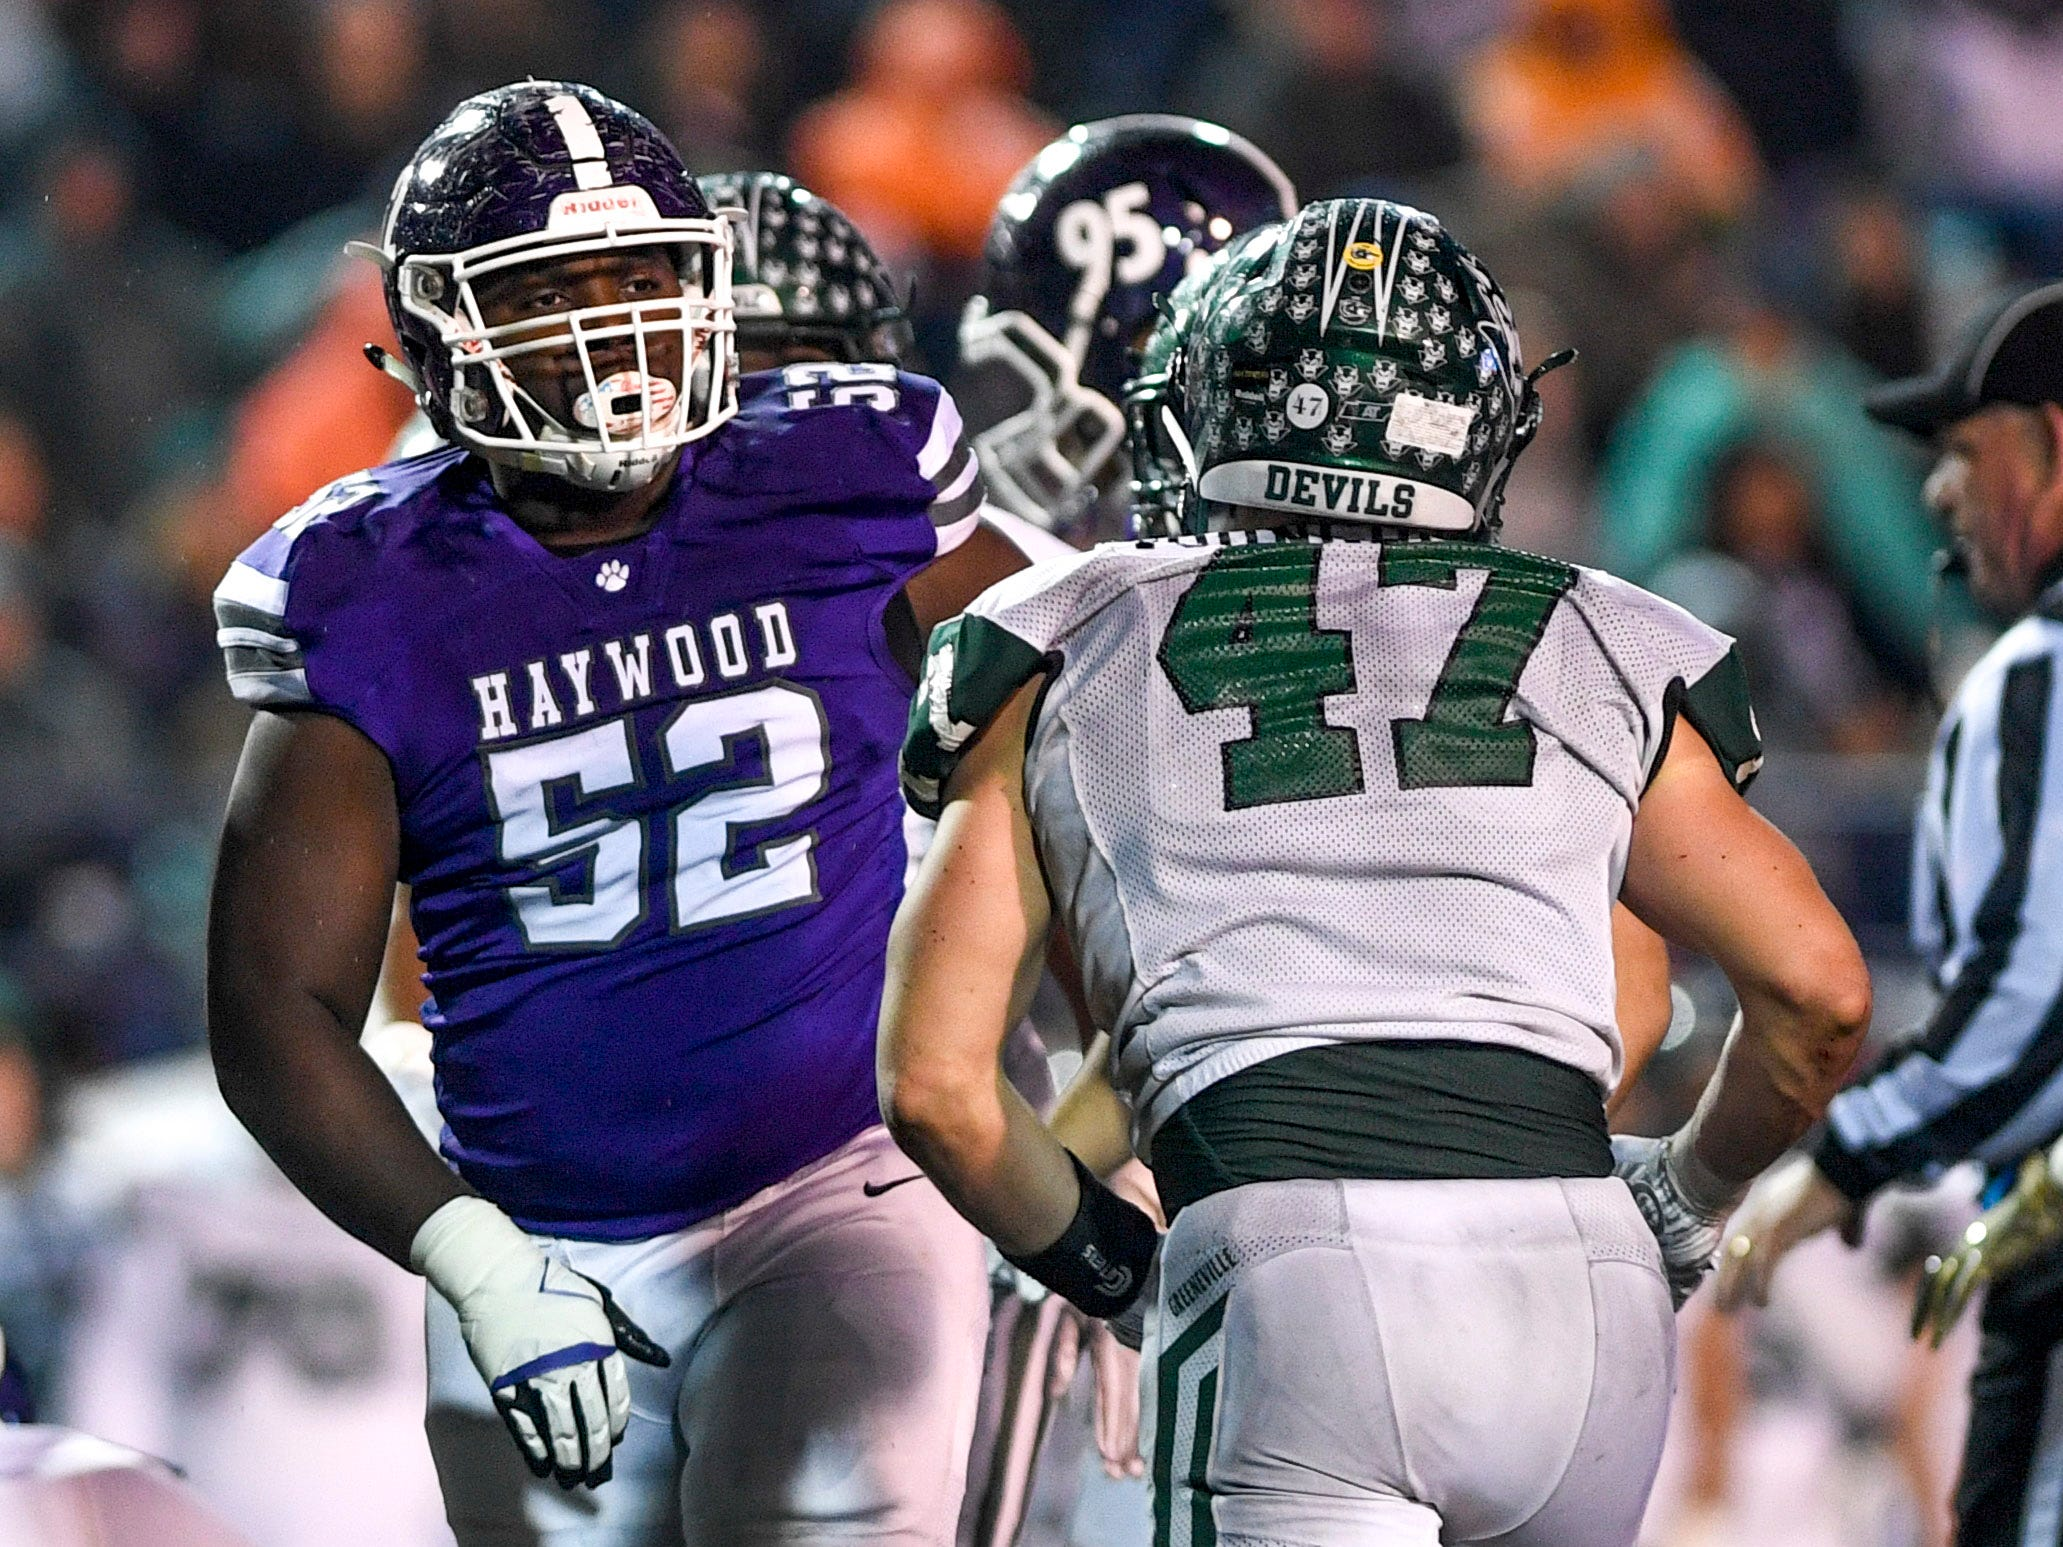 Haywood's Kendall Bond (52) reacts calmly after being punched by Greeneville's Ty Youngblood (47) during the Class 4A Blue Cross Bowl between Haywood and Greeneville at Tennessee Tech's Tucker Stadium in Cookeville, Tenn., on Thursday, Nov. 29, 2018.